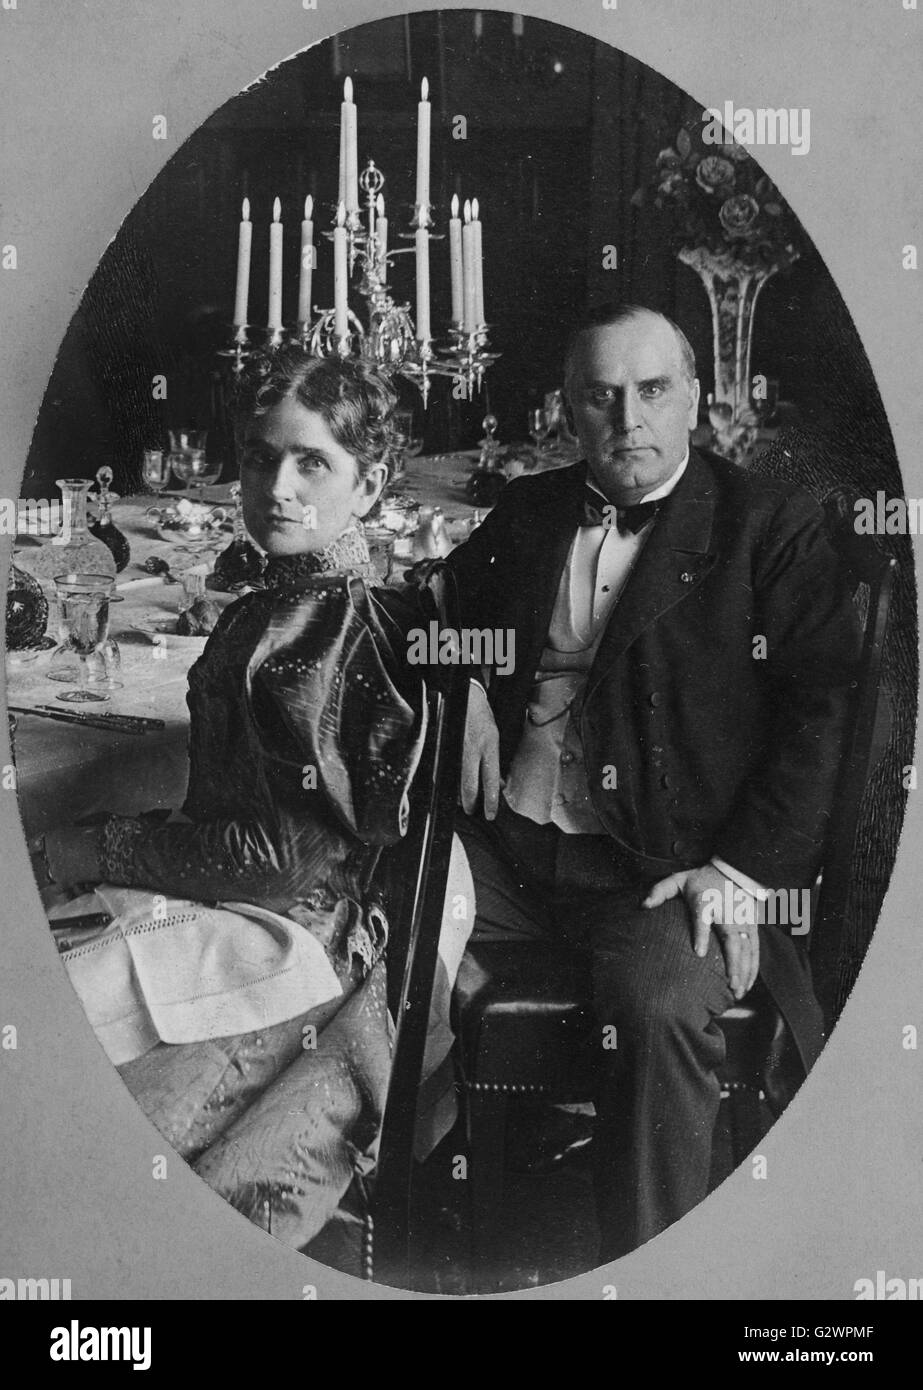 American President William McKinley and his wife Ida McKinley. - Stock Image